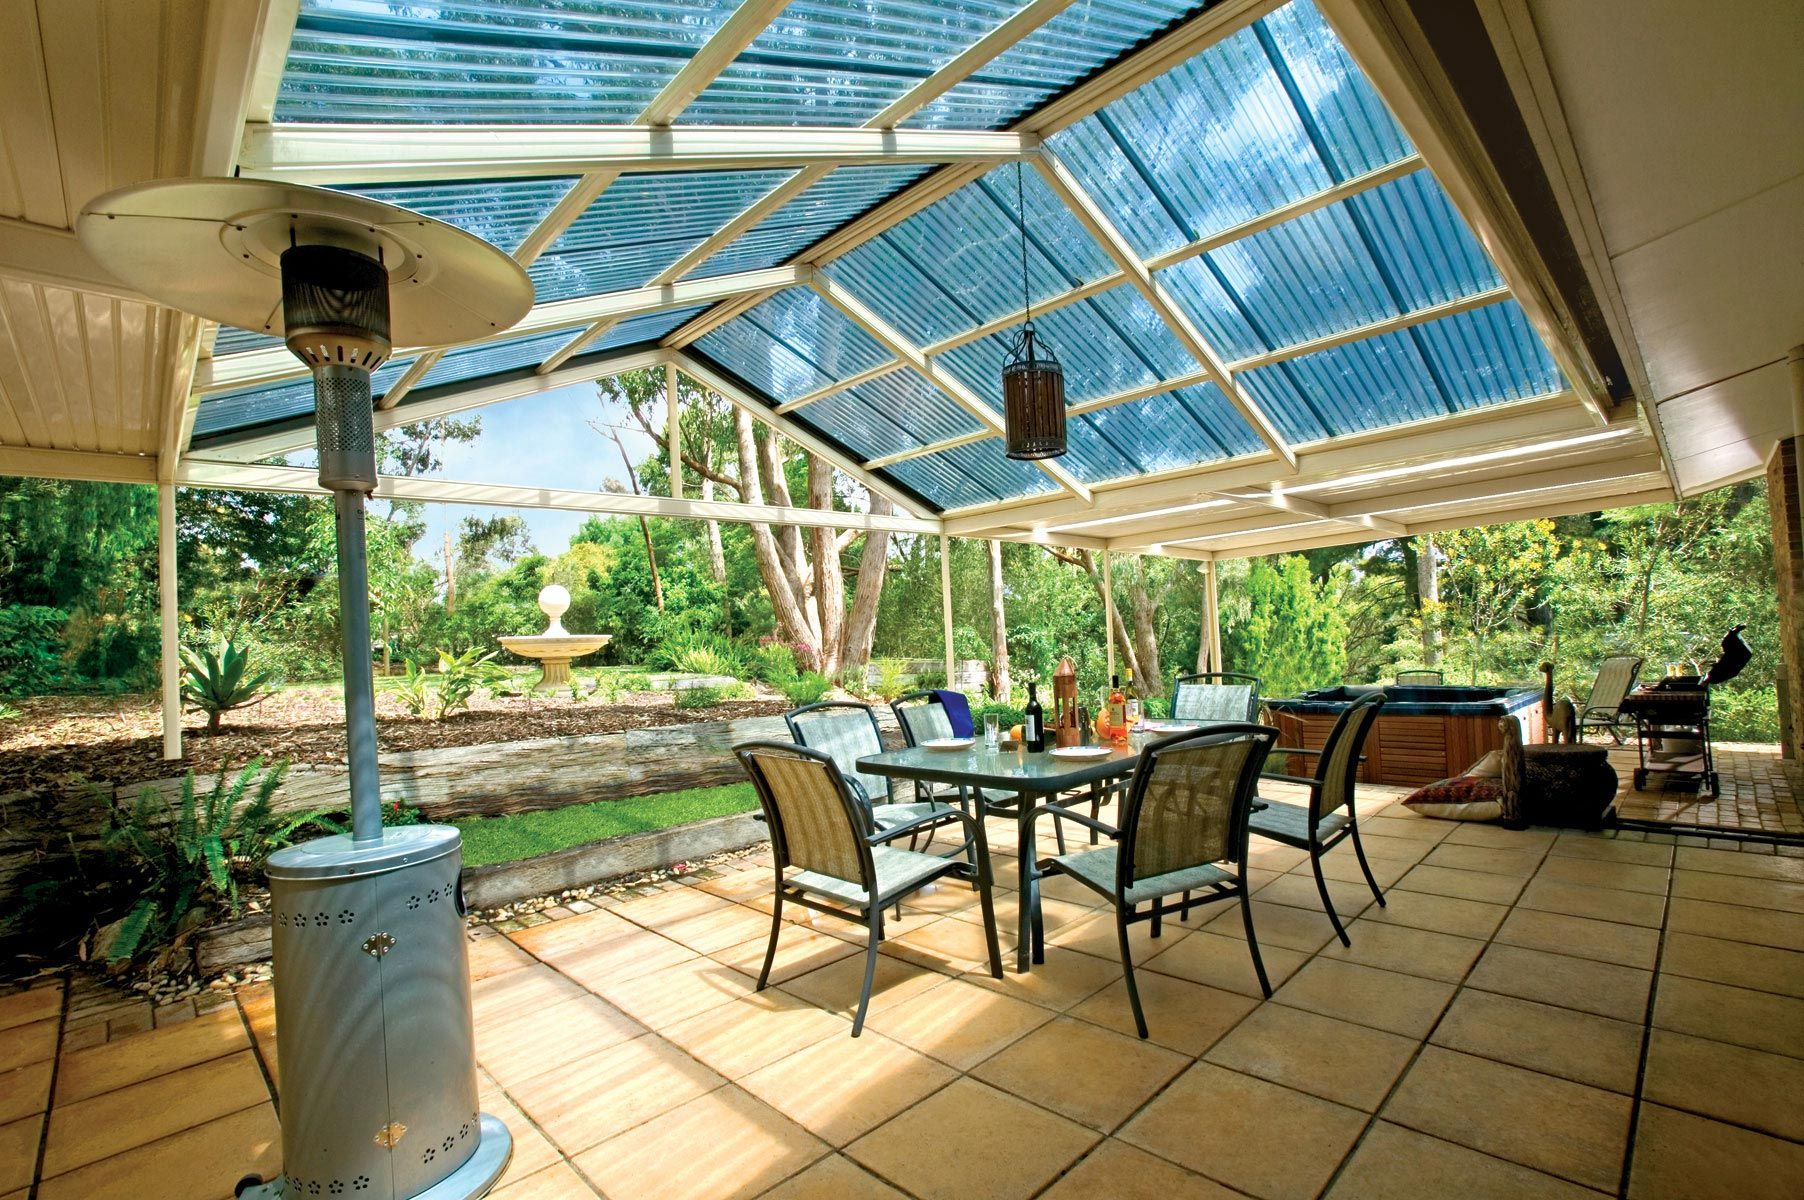 Exhibiting a strong presence and style, the pitched roof